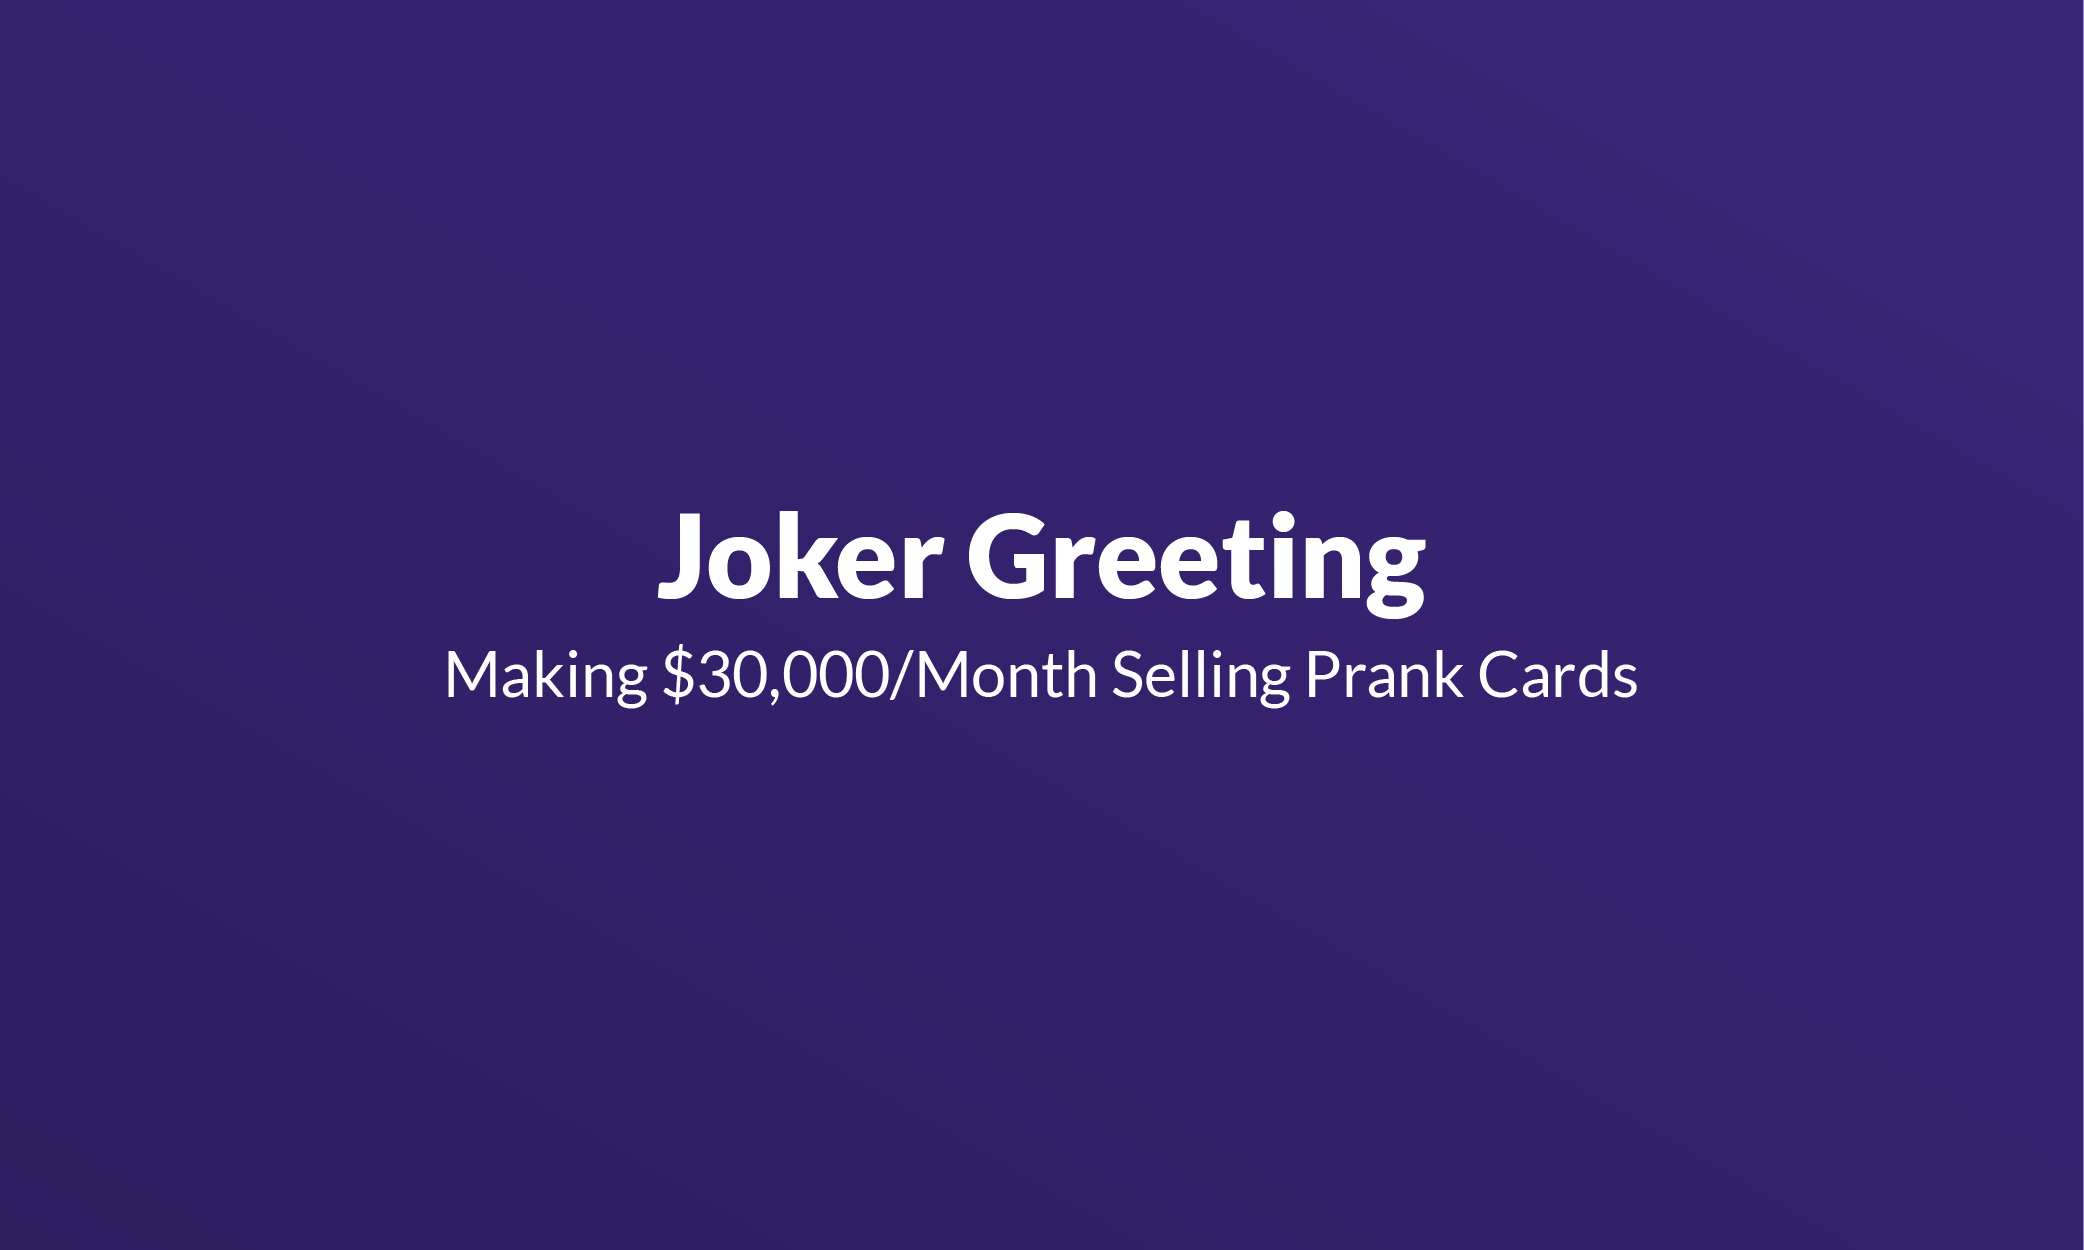 Joker Greeting - Mistakes